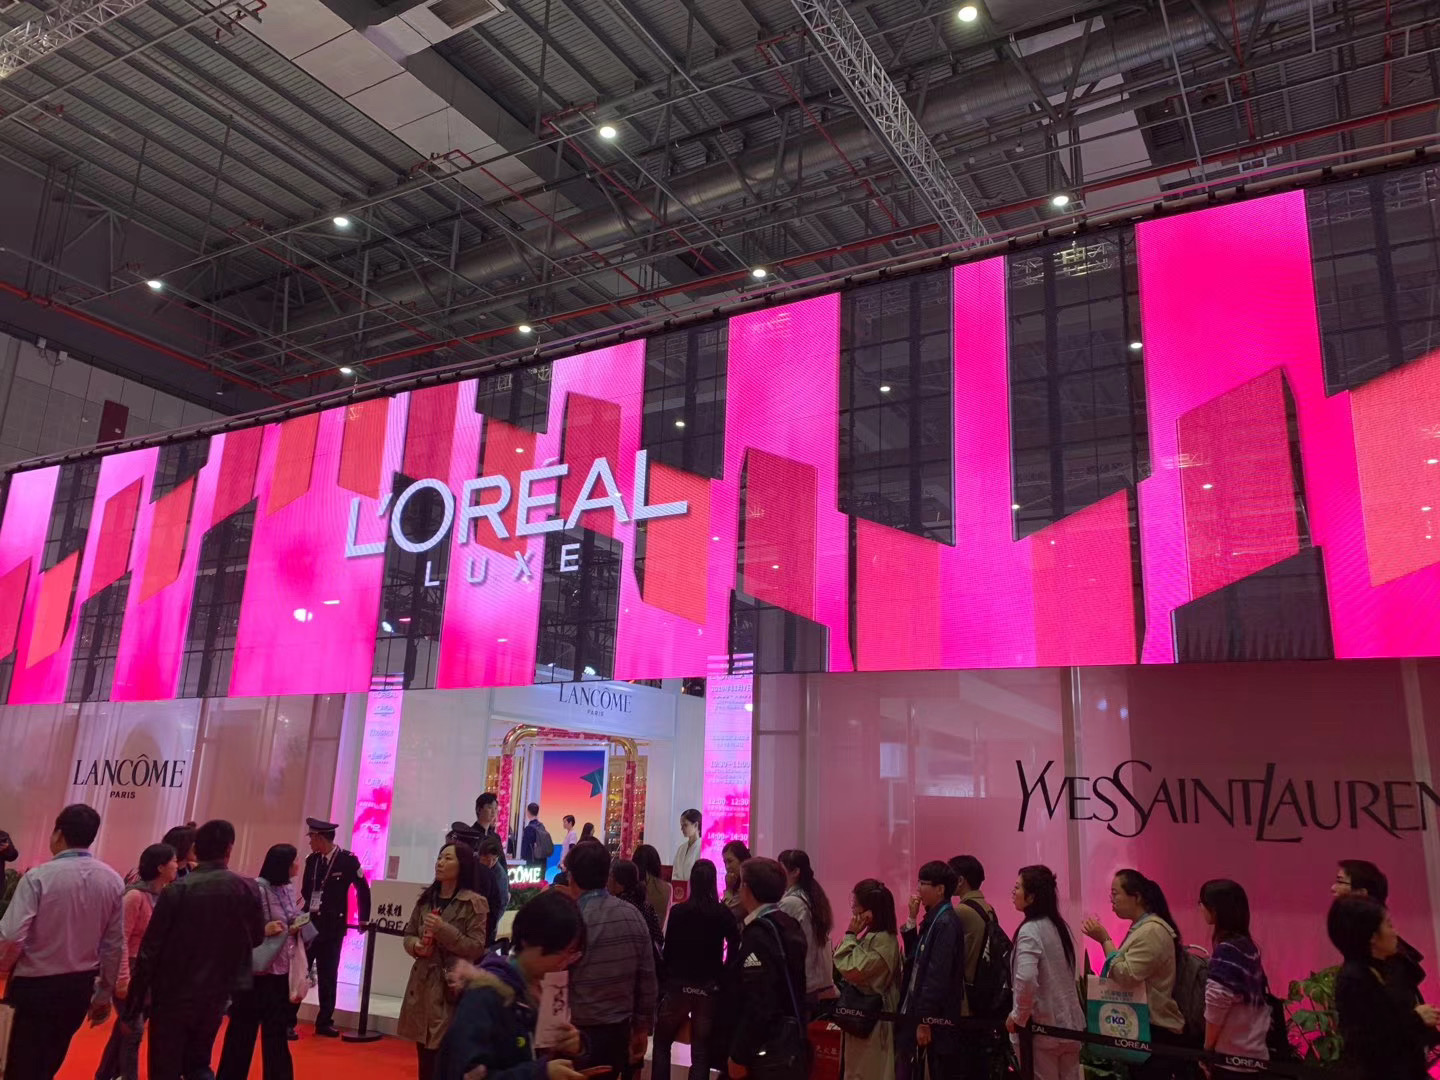 The L'Oréal pavilion at the second edition of China International Import Expo in Shanghai